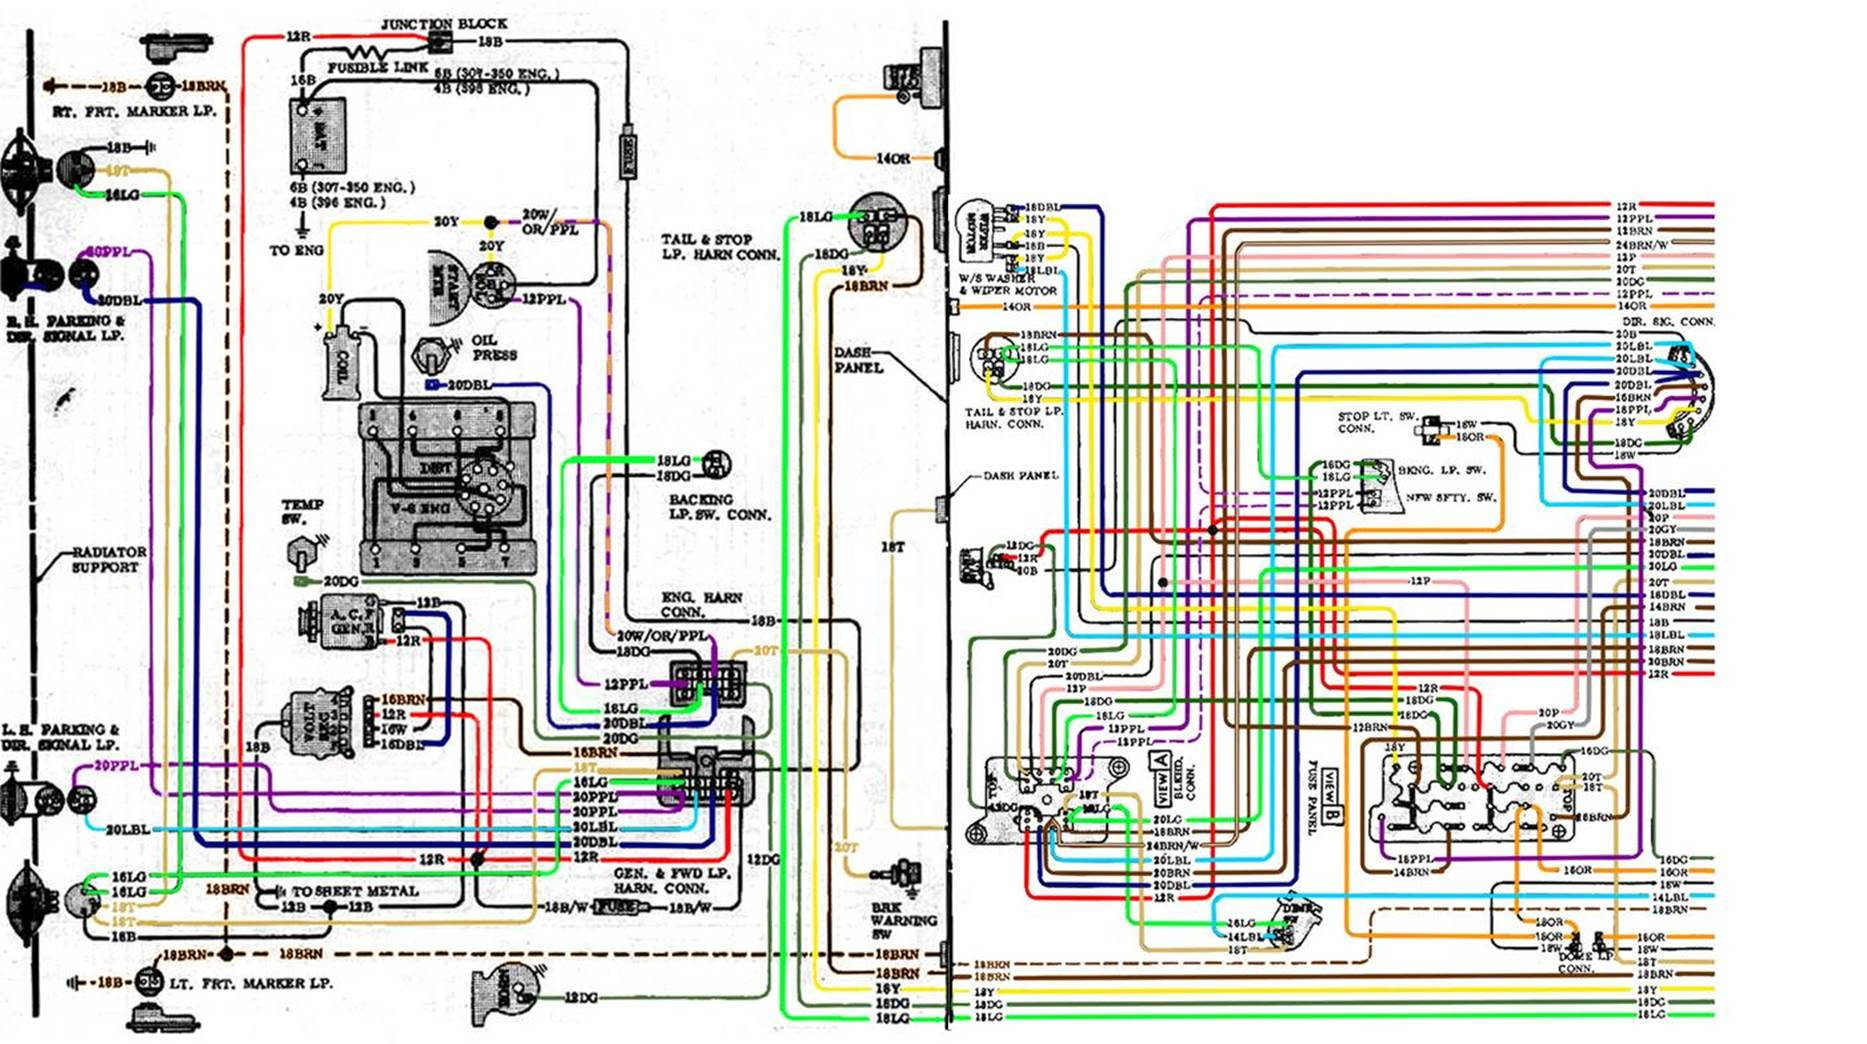 image002 72 c10 wiring diagram chevy truck wiring diagram \u2022 wiring diagrams 65 chevy wiring harness at readyjetset.co